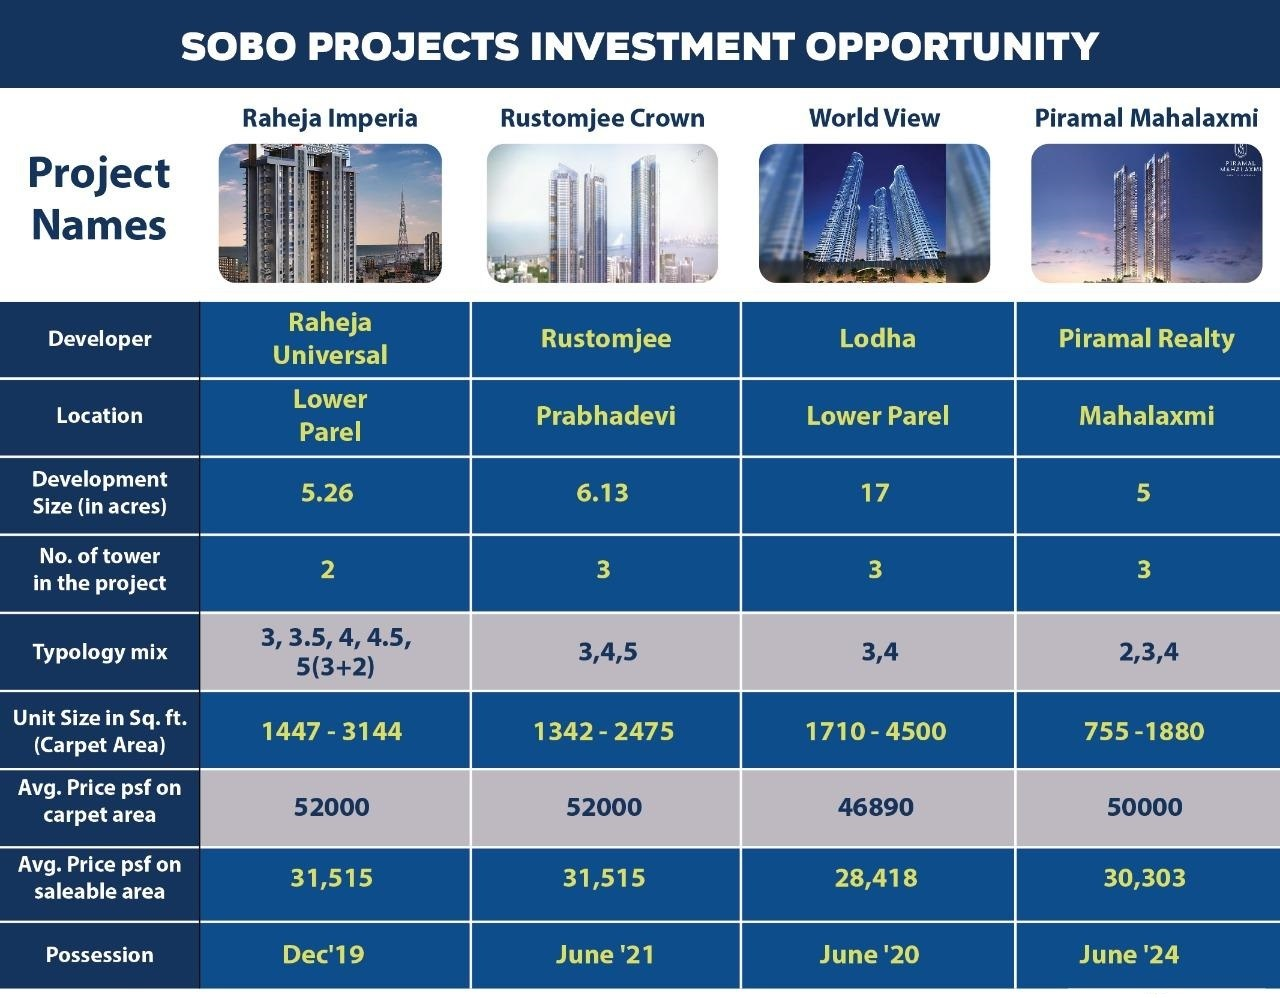 Trending investment opportunity projects in South Mumbai